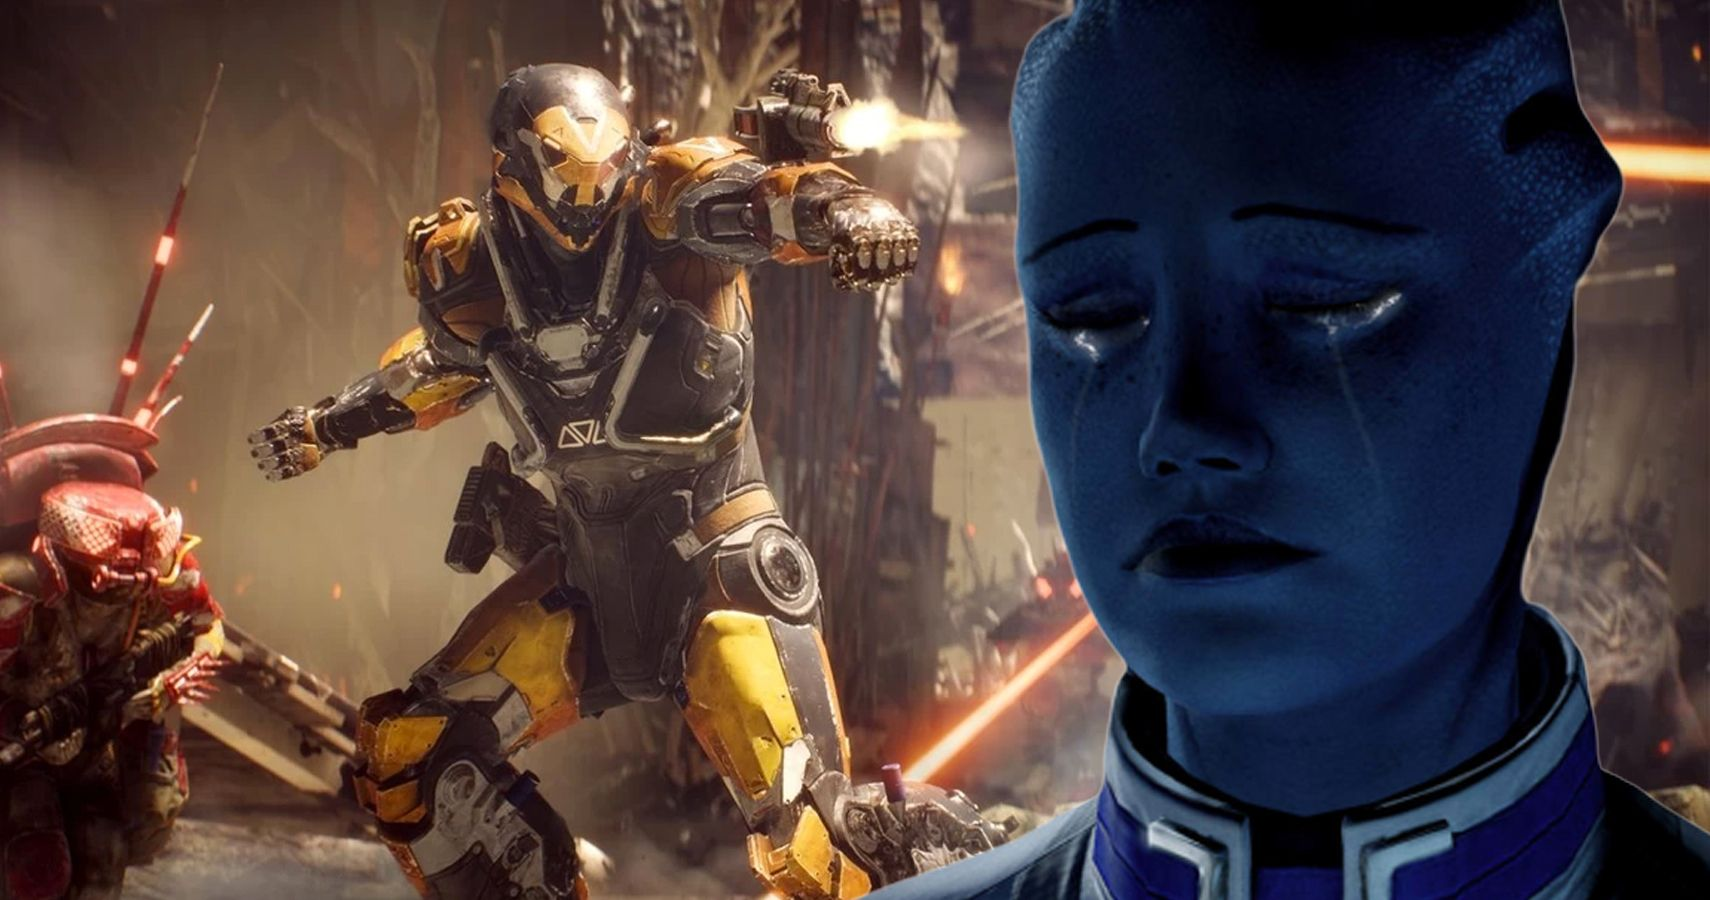 All Signs Point To Anthem Being Shelved Just Like Andromeda